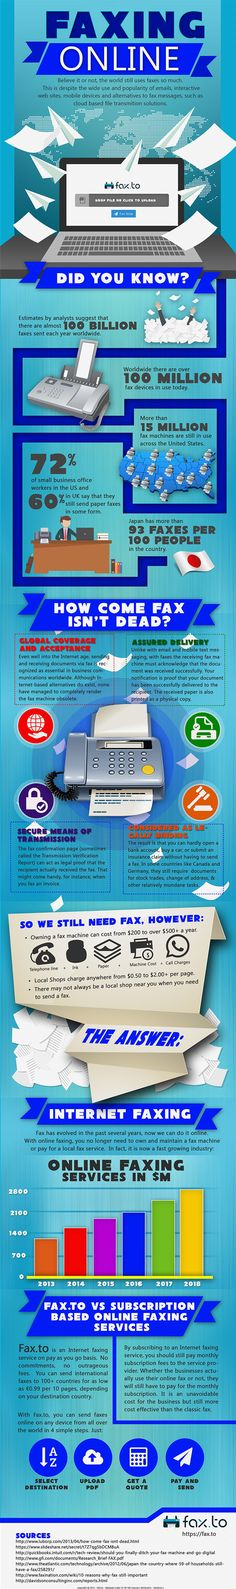 Fax to is the world leader in internet faxing, offering fast, reliable fax service to countries all over the world.  Read here: https://fax.to/blog/online-faxing-infographic